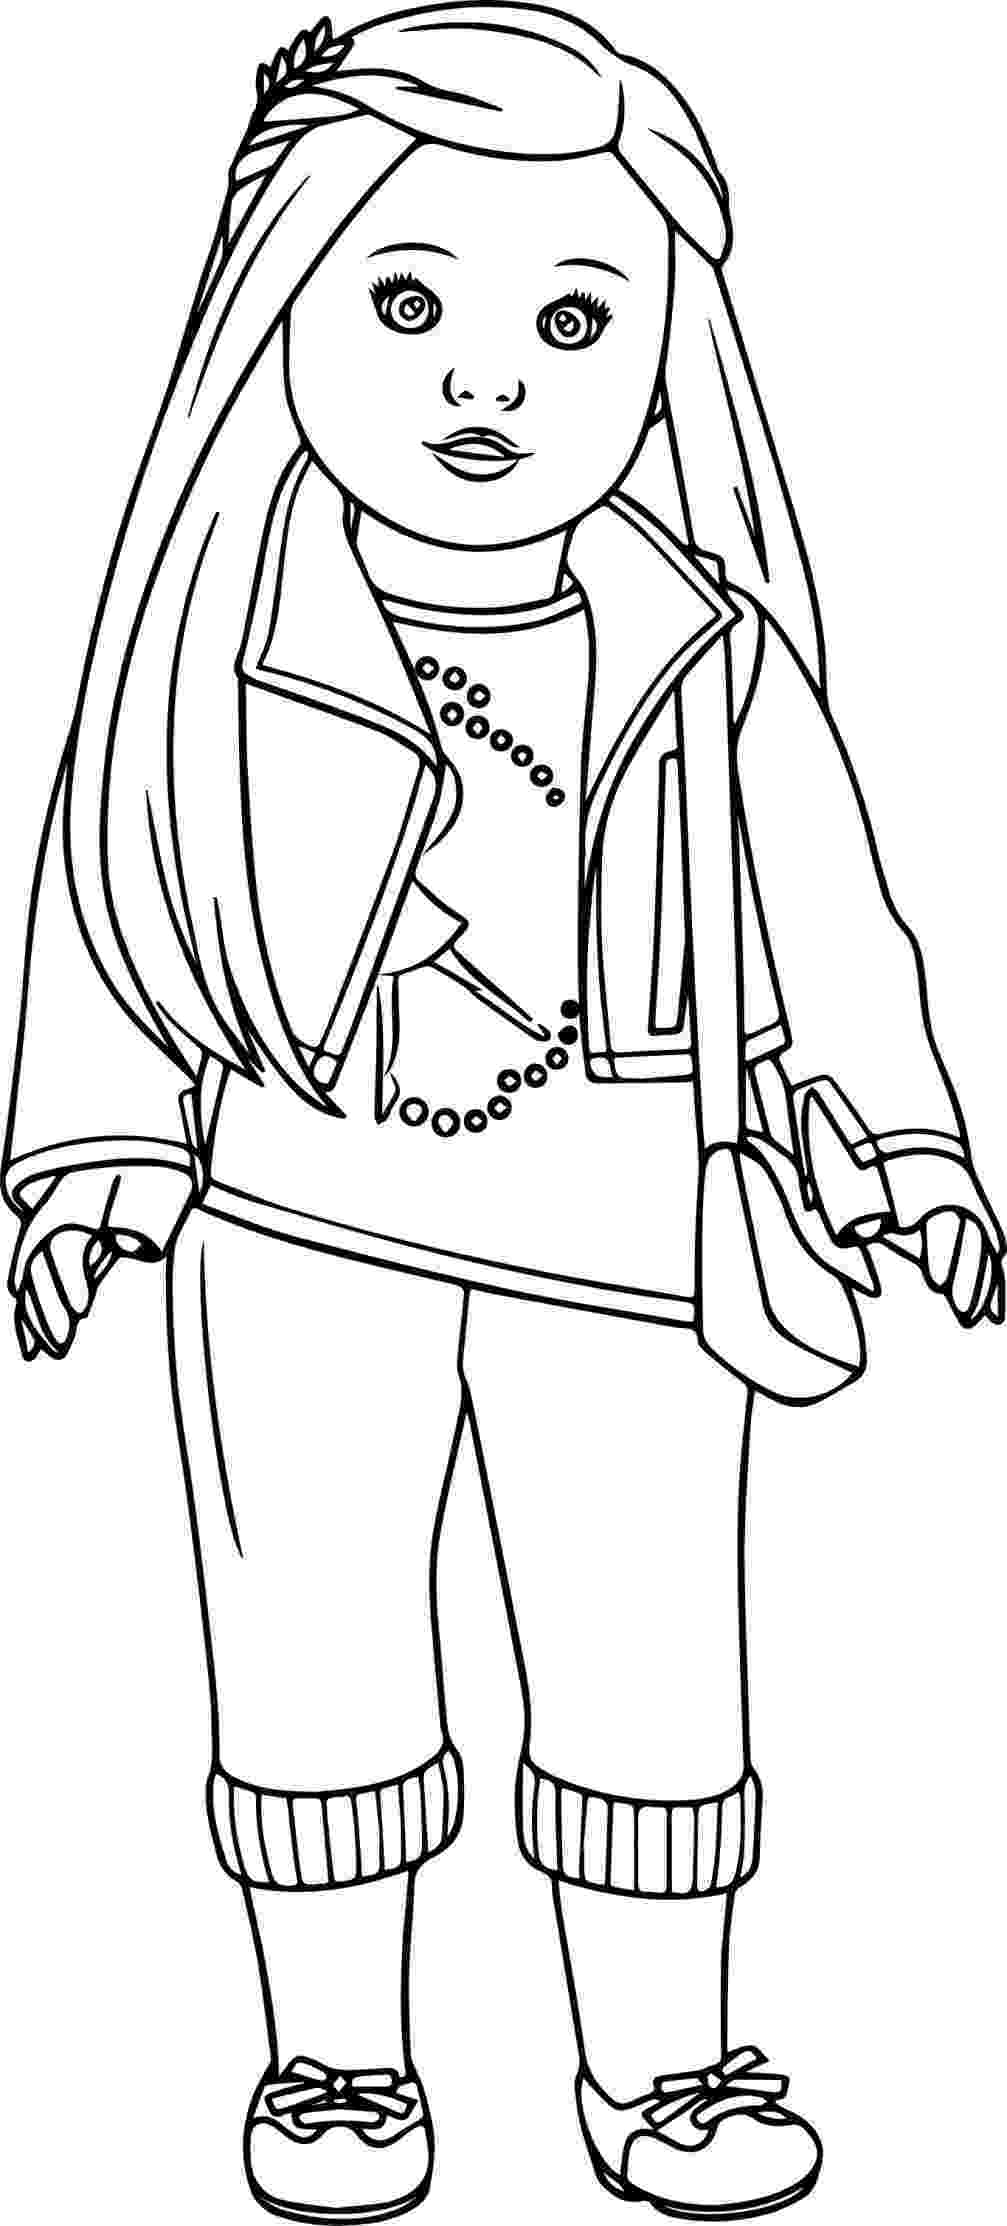 colouring pages to print for girls american girl coloring pages best coloring pages for kids pages girls for colouring to print